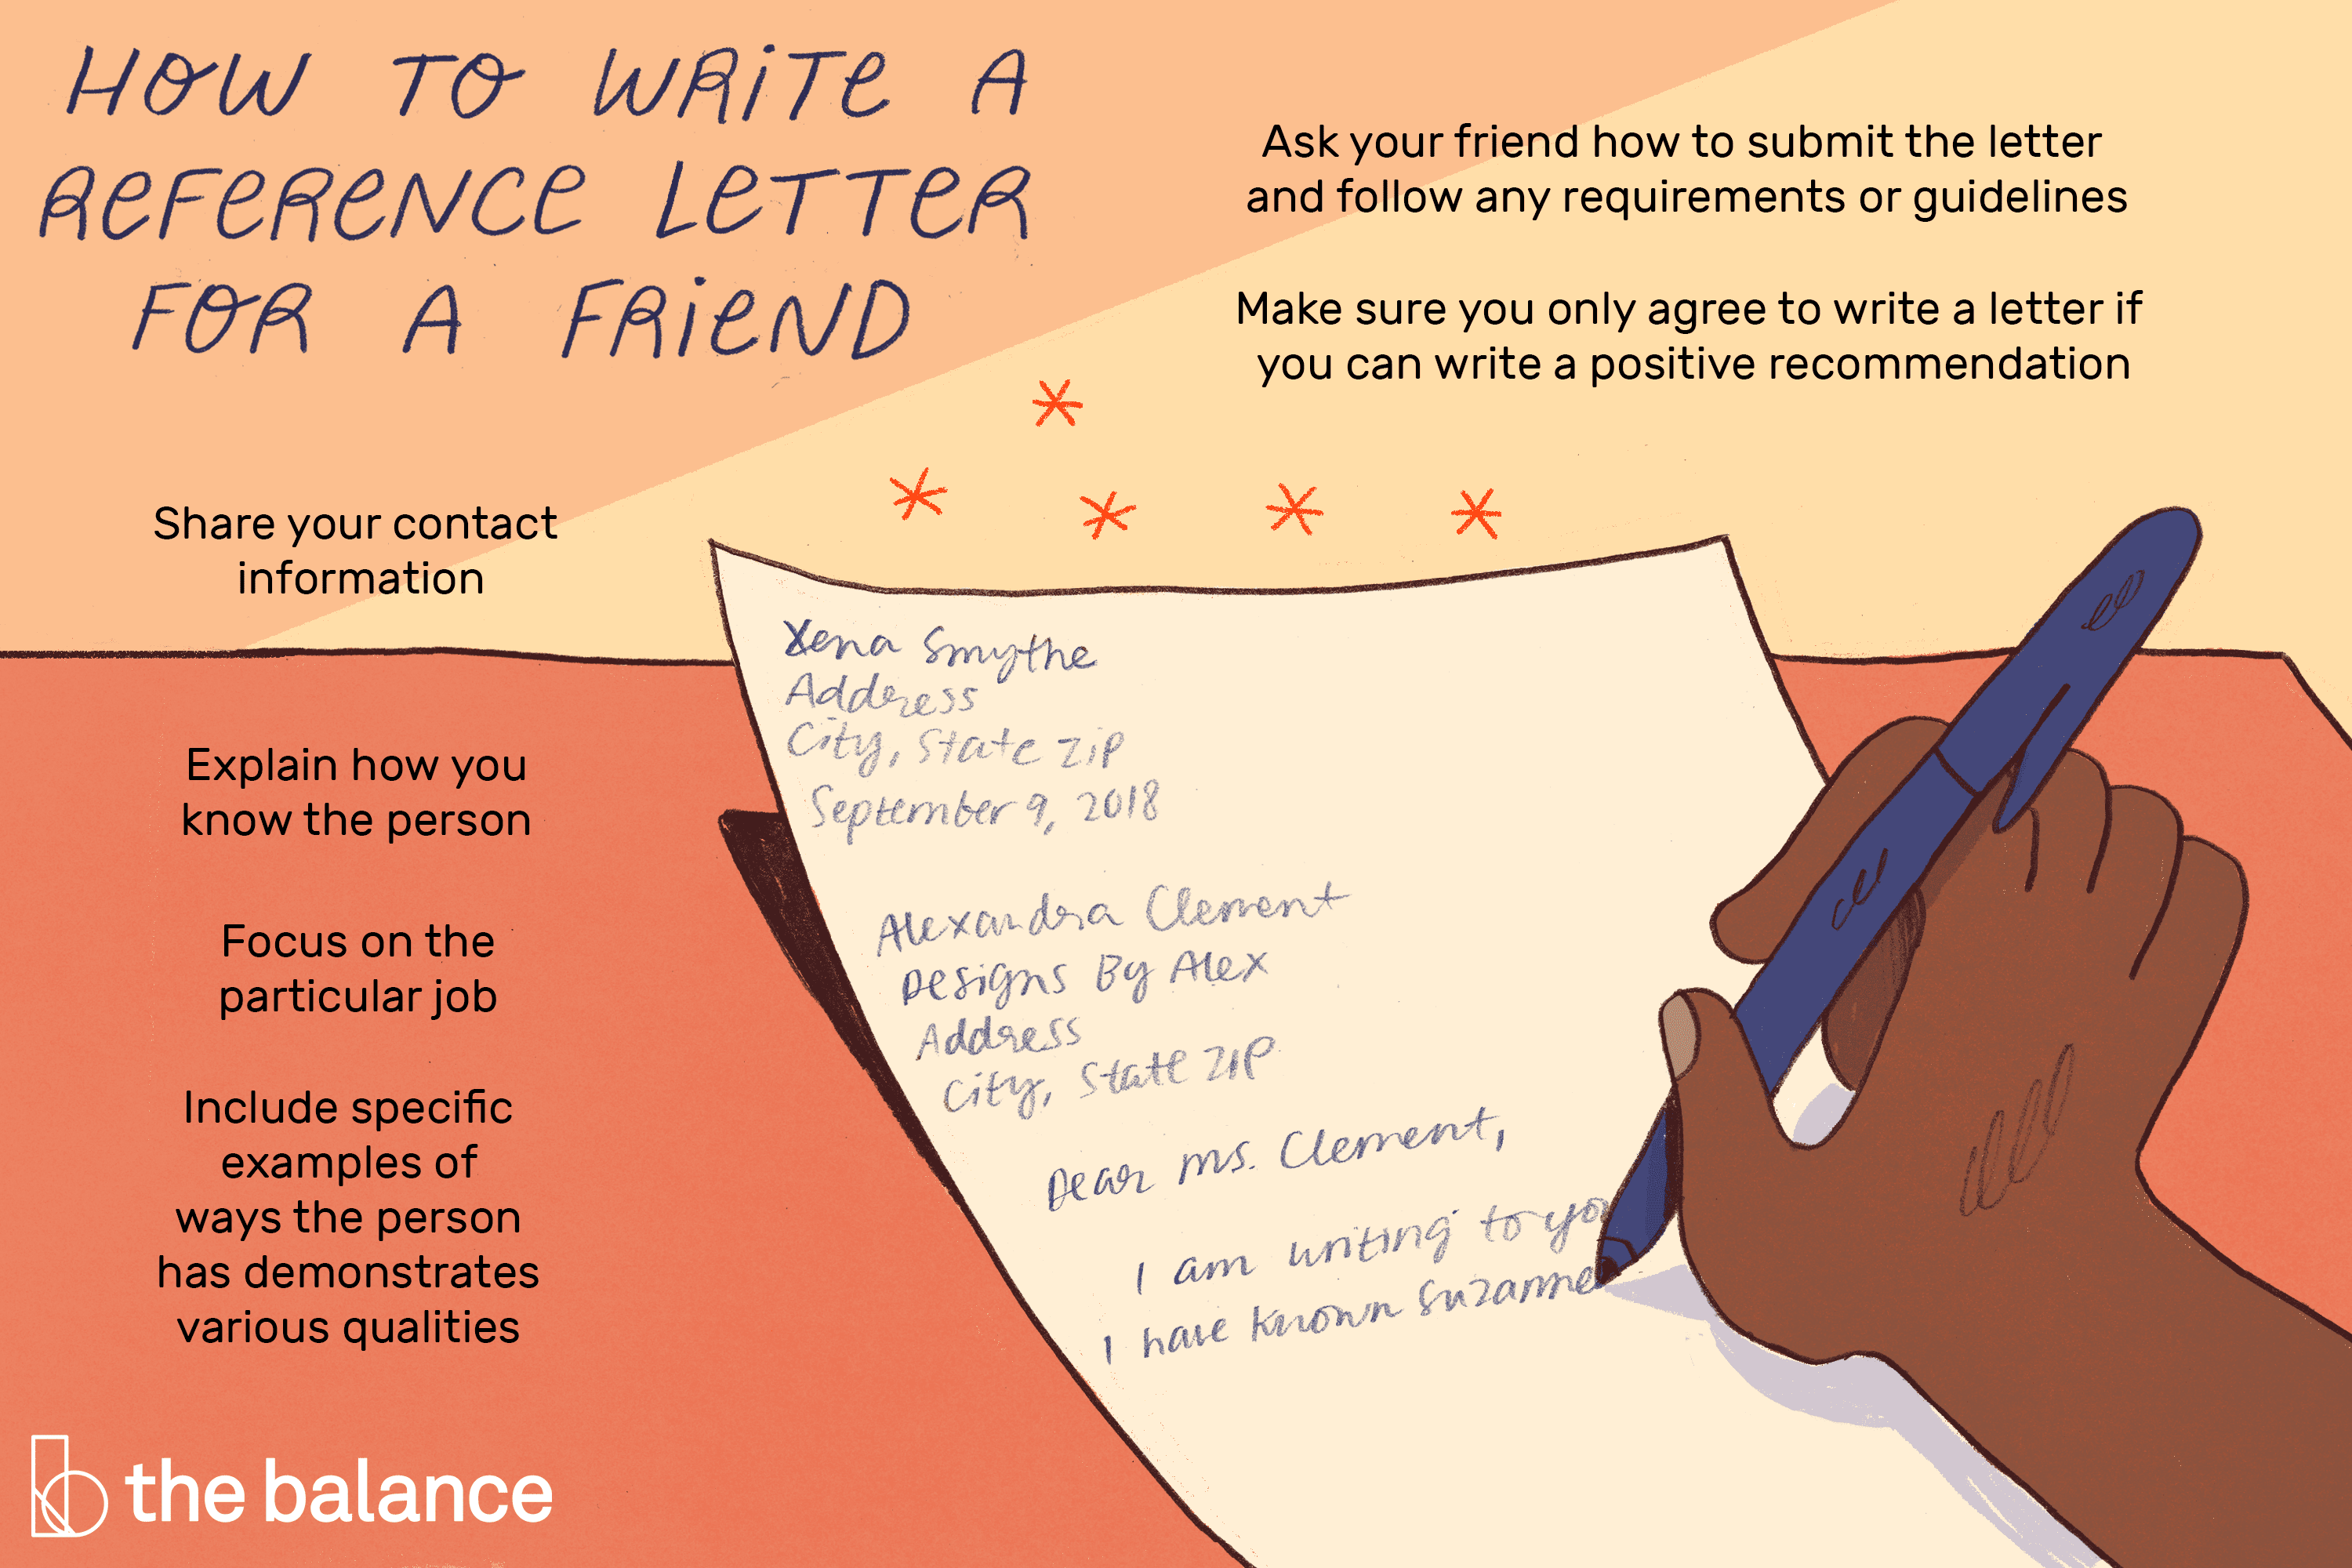 how to write a reference letter for a friend 2062922 final 5ba500aa4cedfd00252f0799png